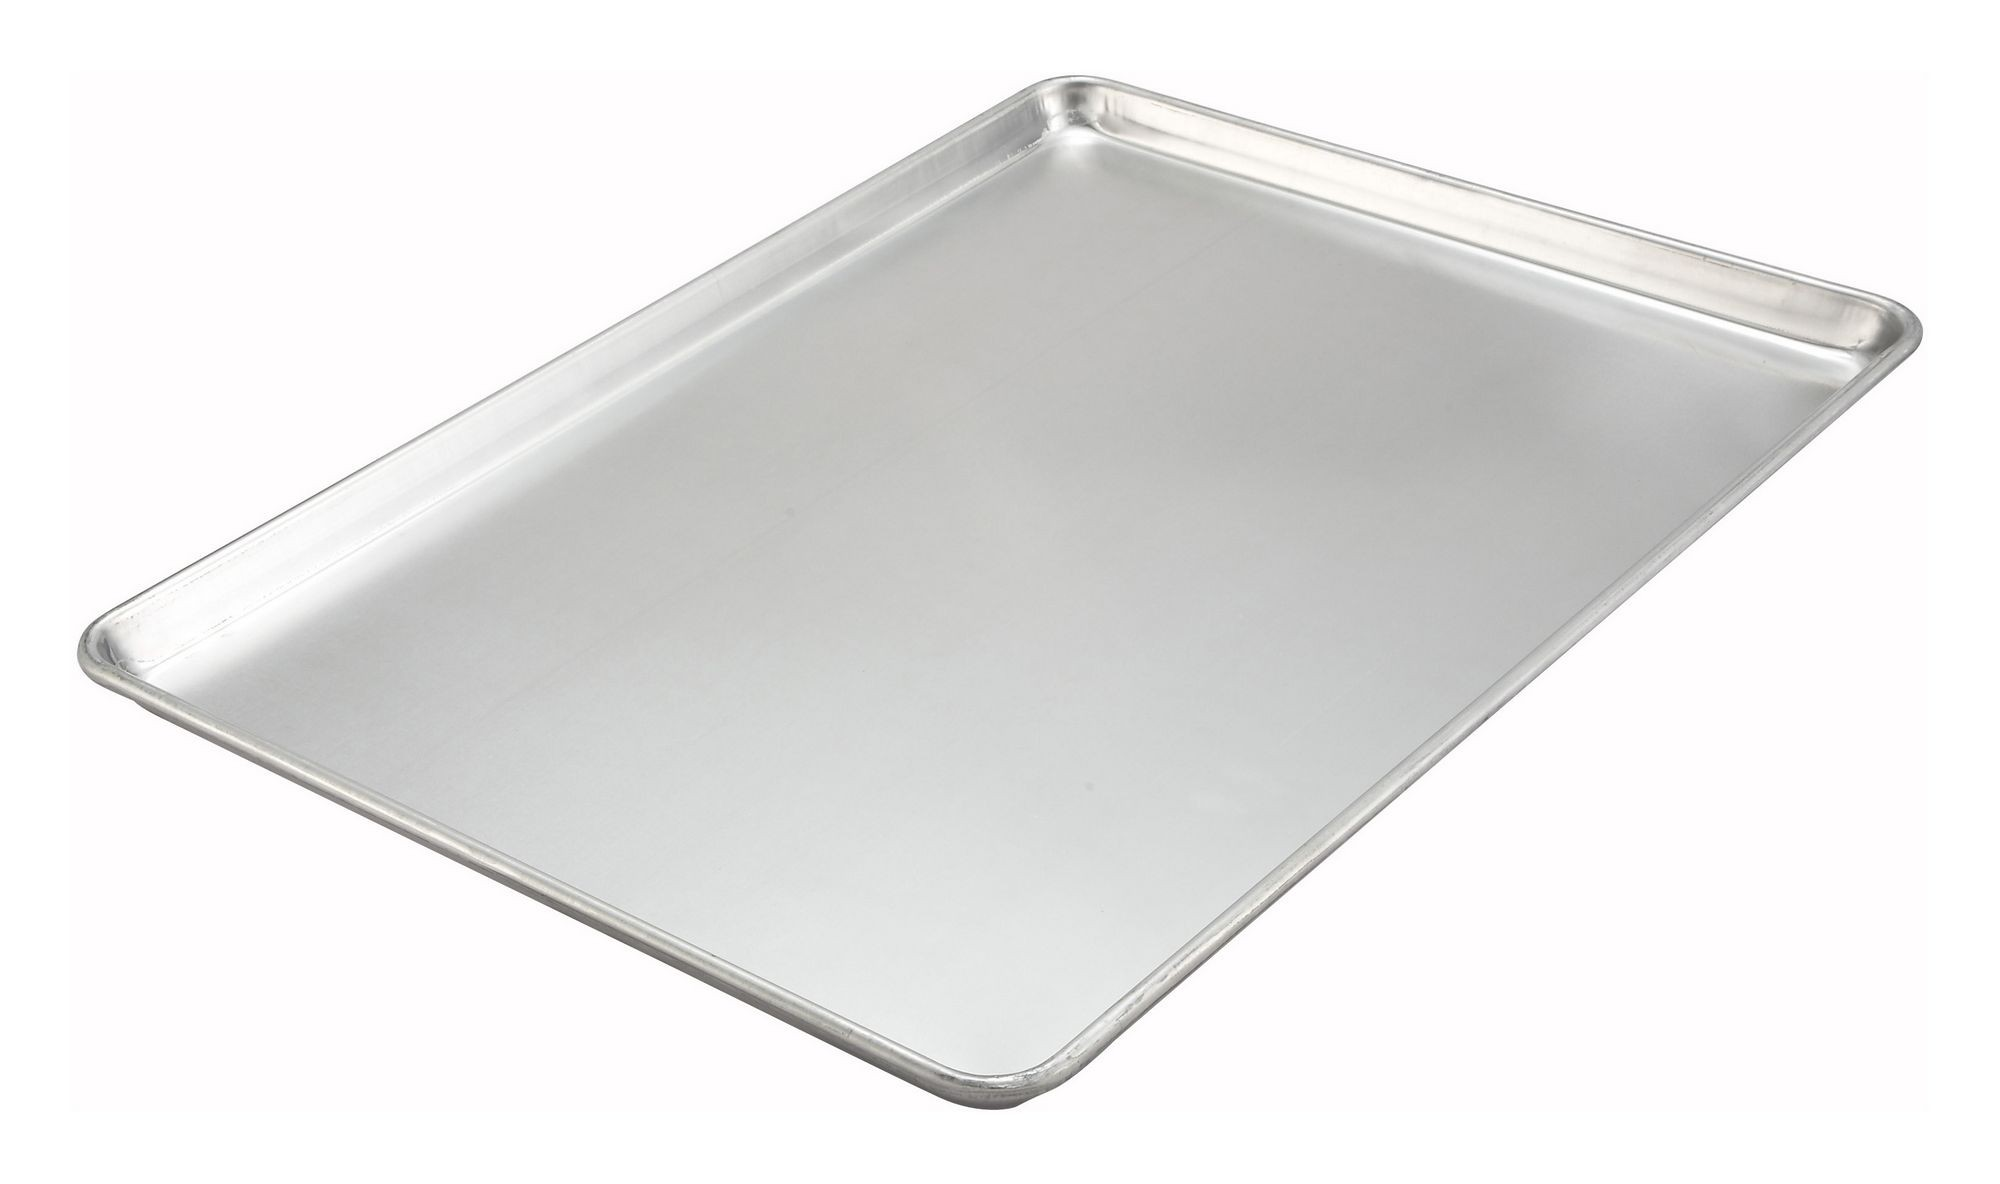 Full-Size 19-Gauge Aluminum Sheet Pan, 18